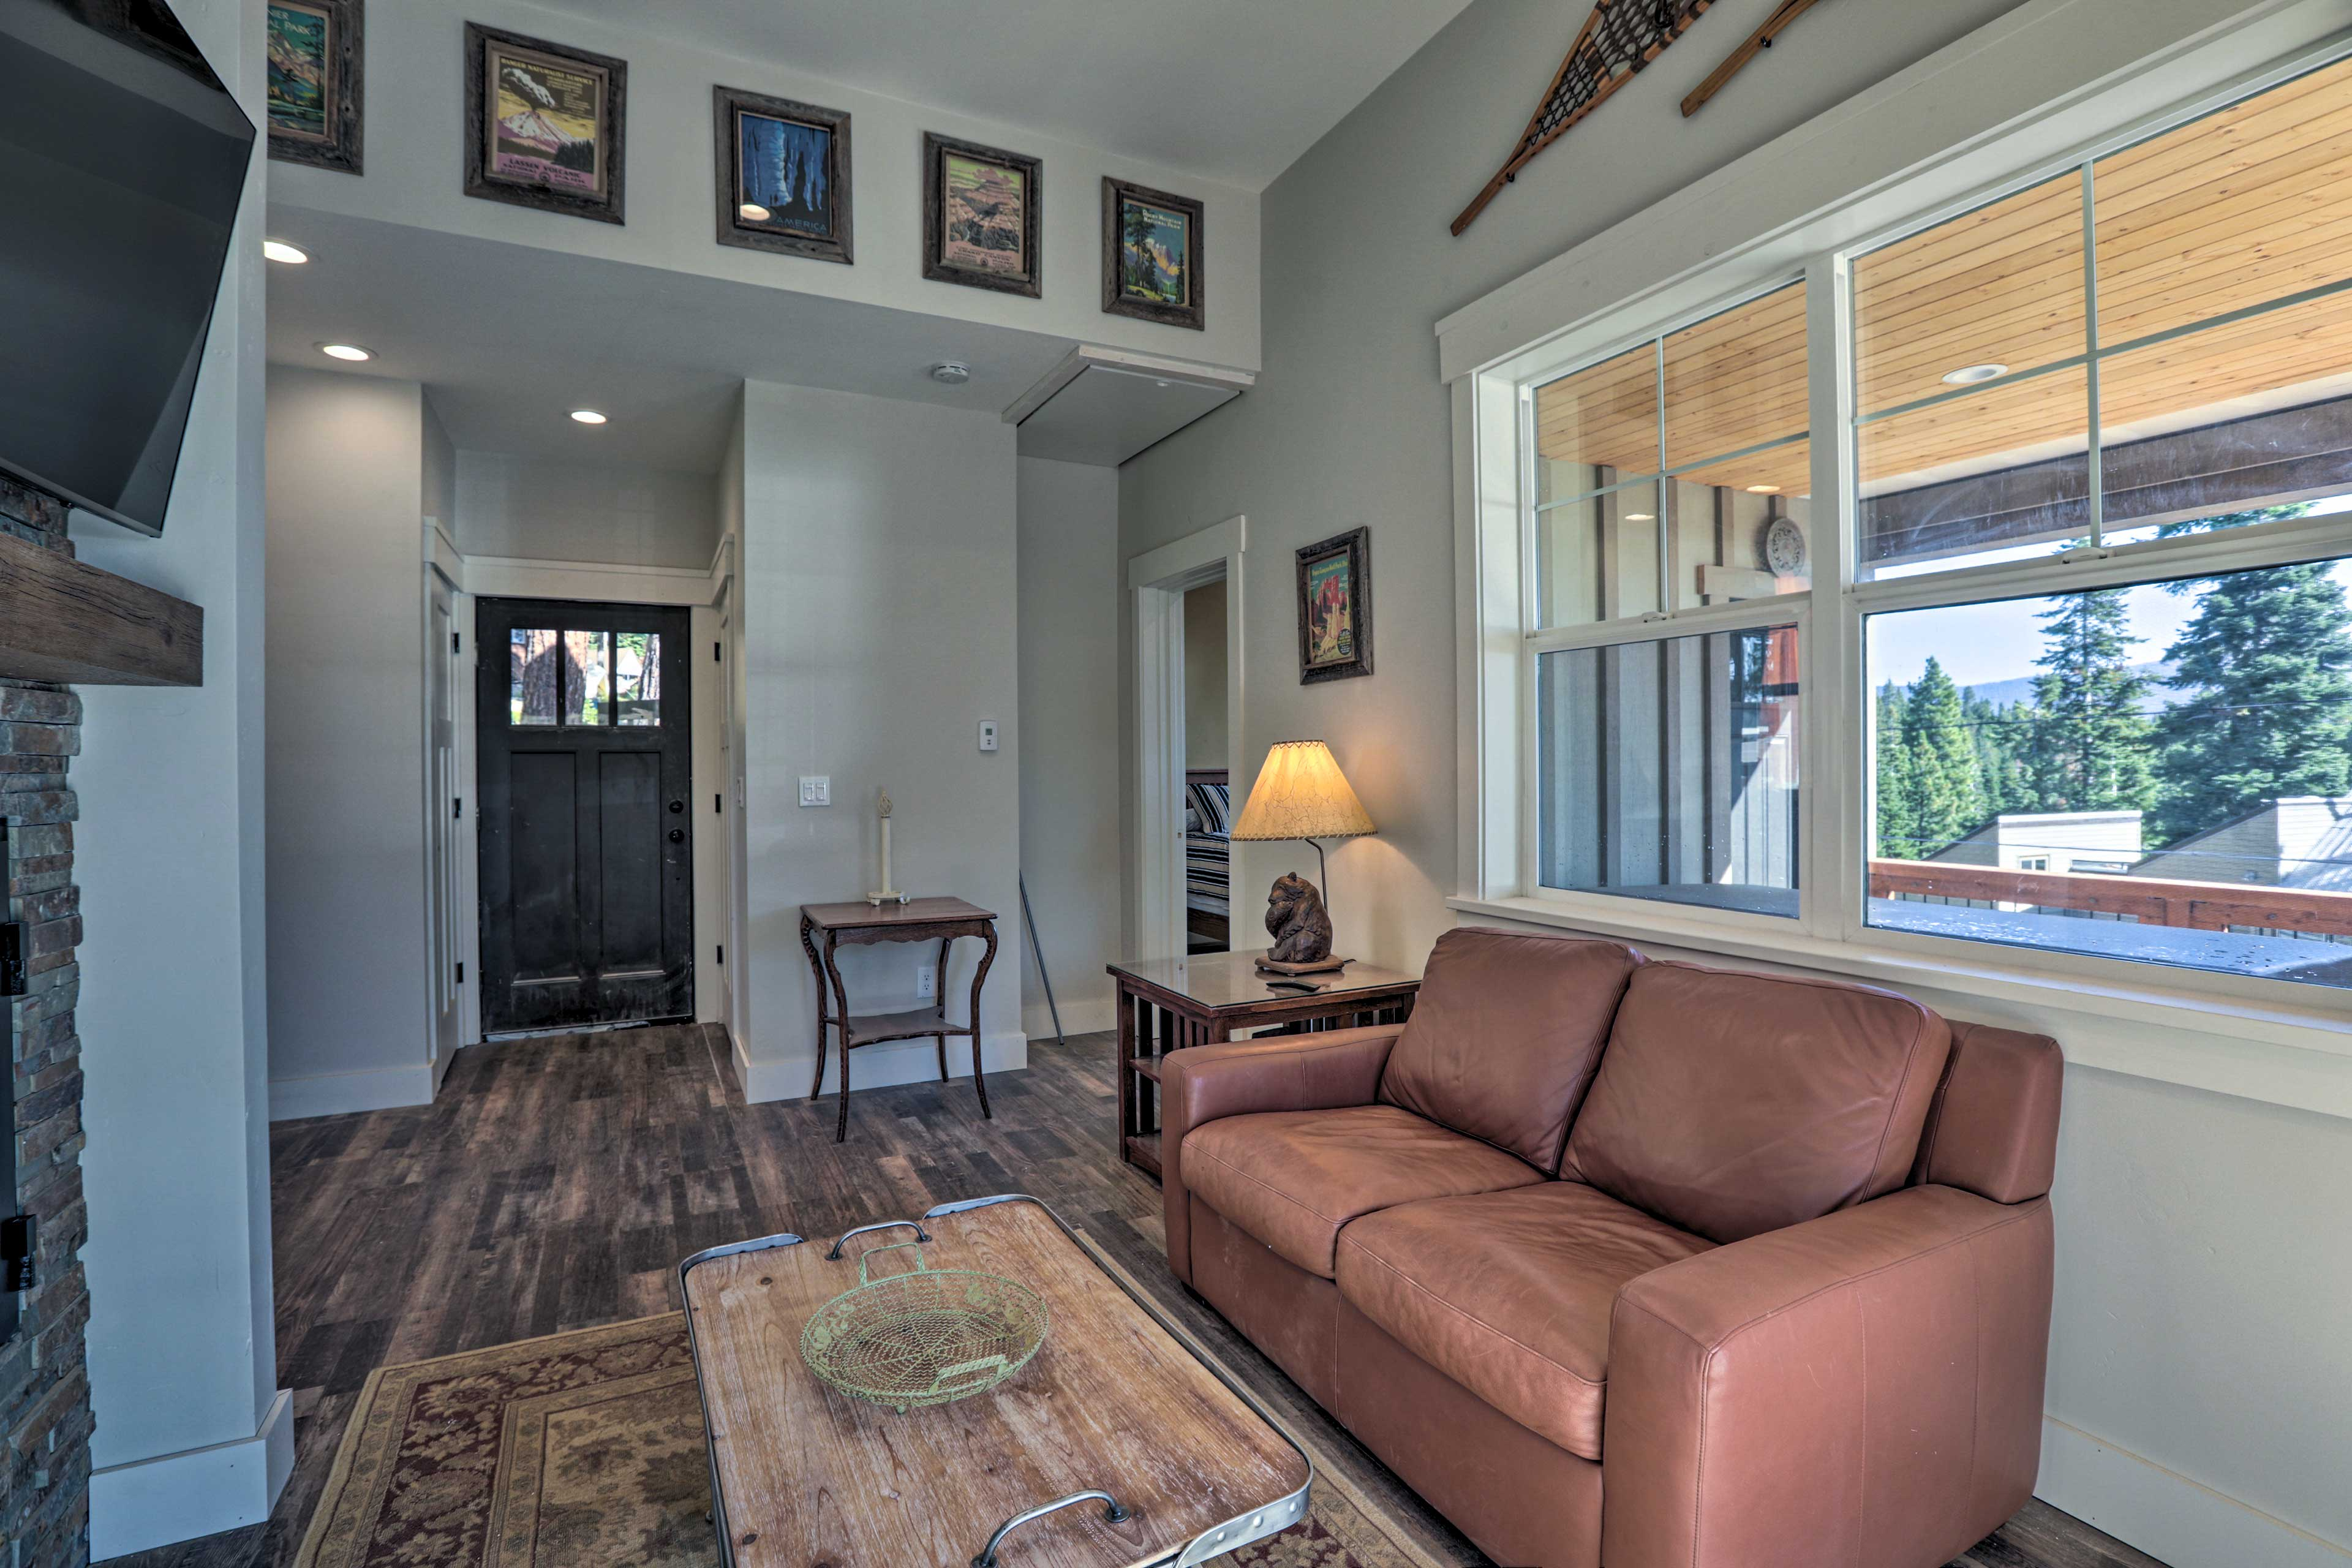 There's an additional living area with a flat-screen TV and a fireplace.